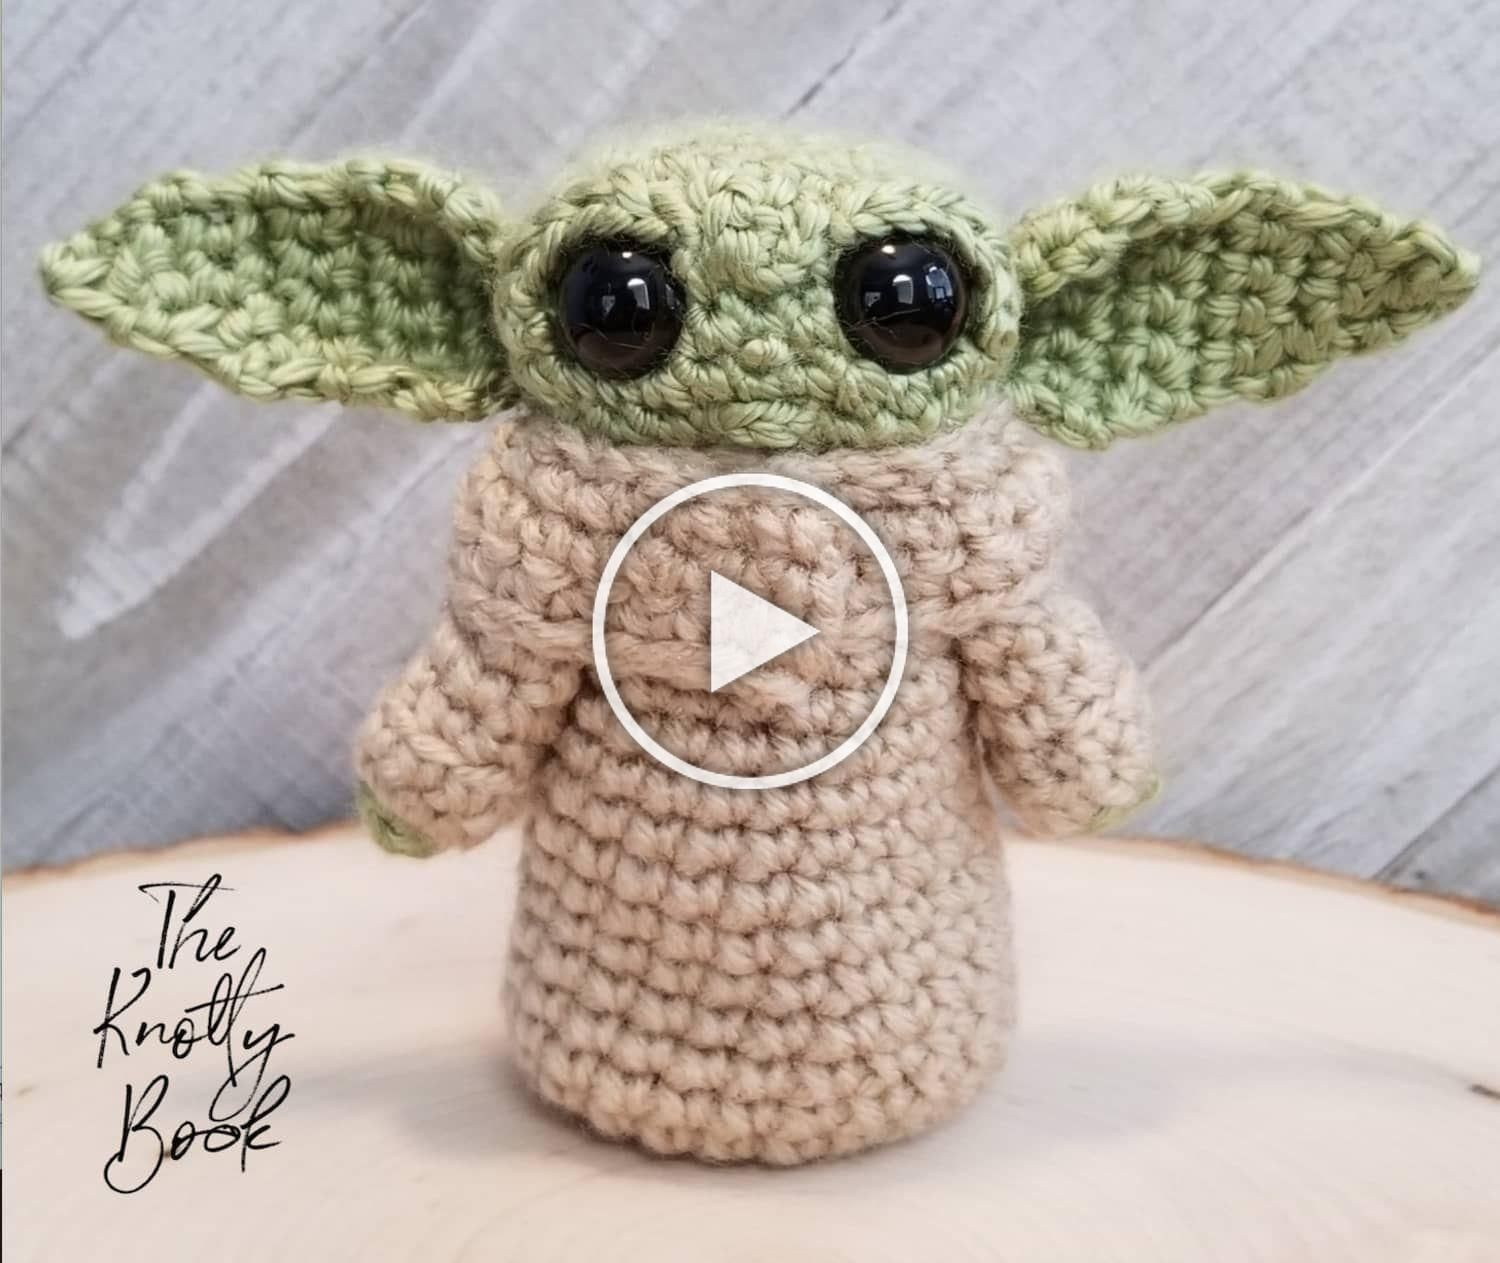 Is 2019 suddenly the year of Baby Yoda? What was life